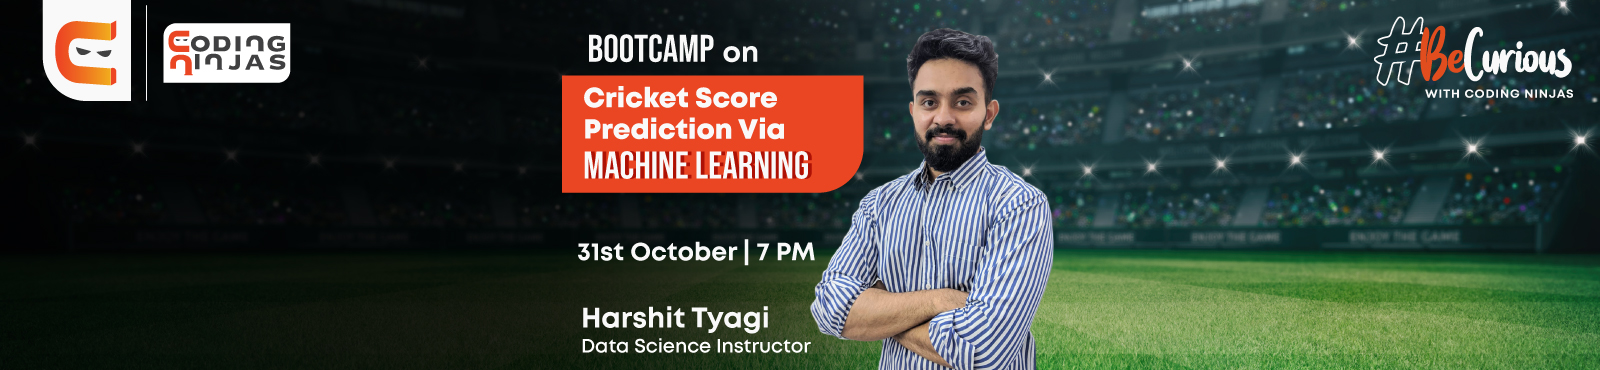 Boot Camp on Cricket Score Prediction Via Machine Learning